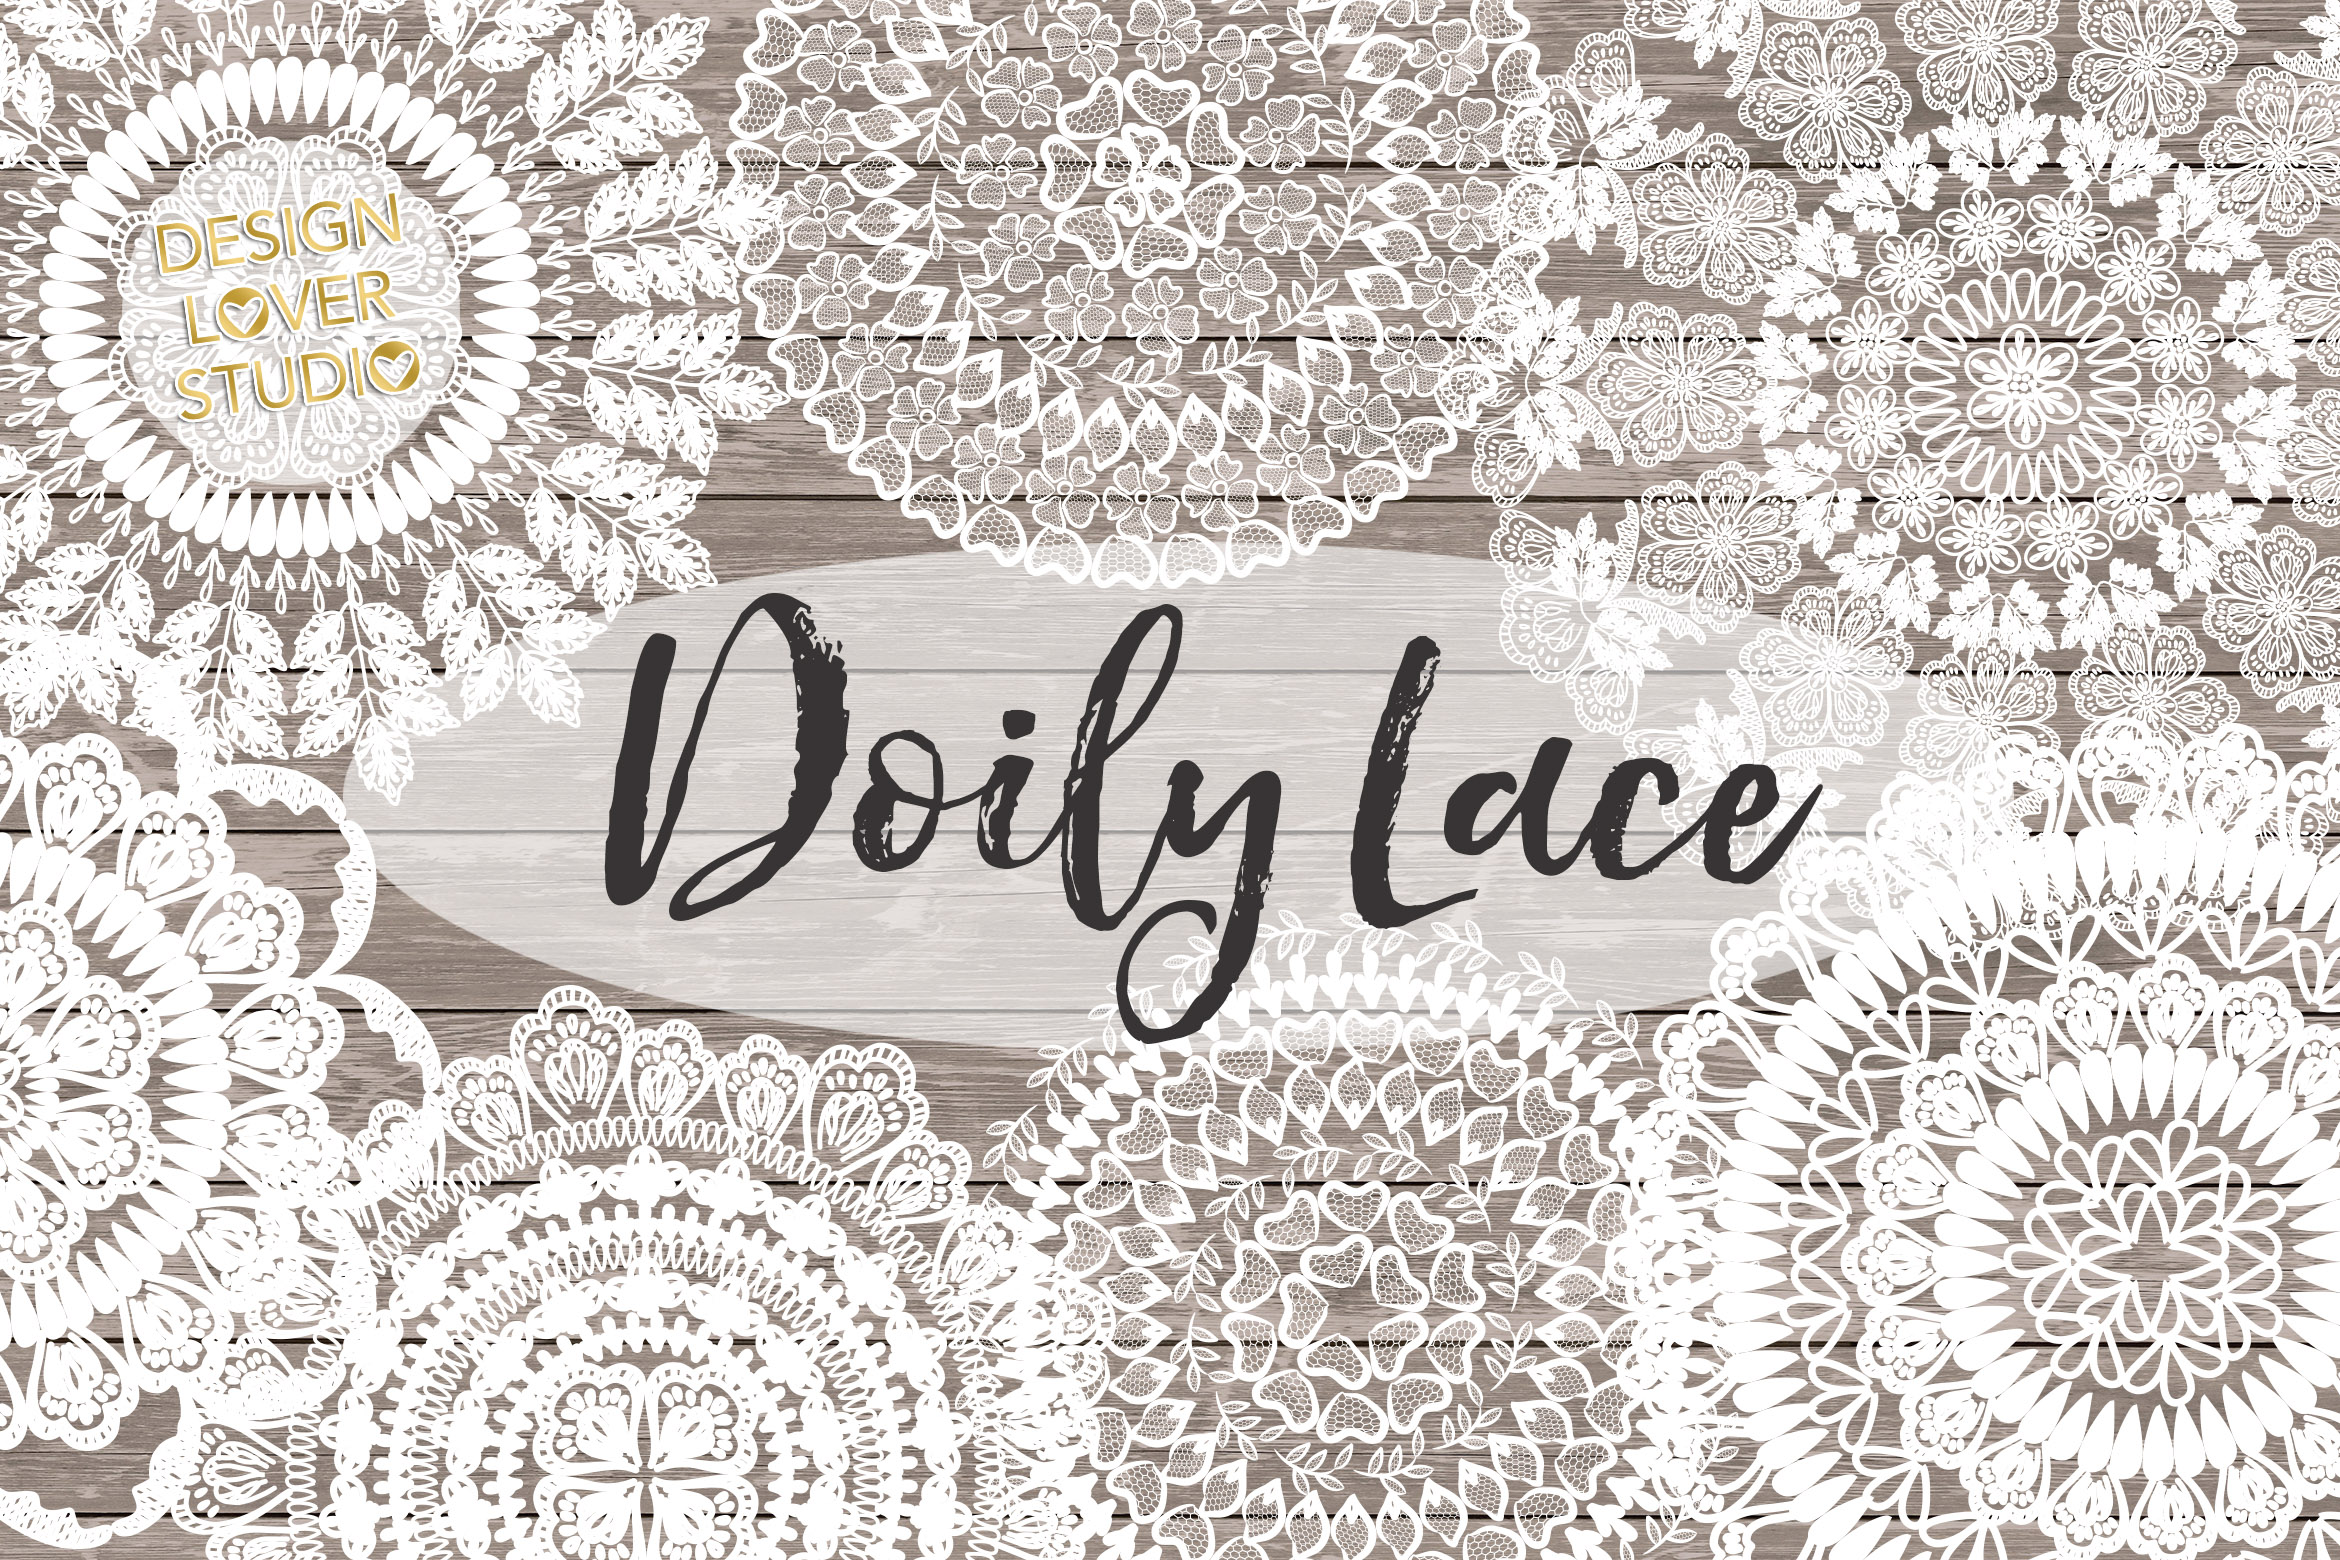 Vector Rustic Doily lace example image 1